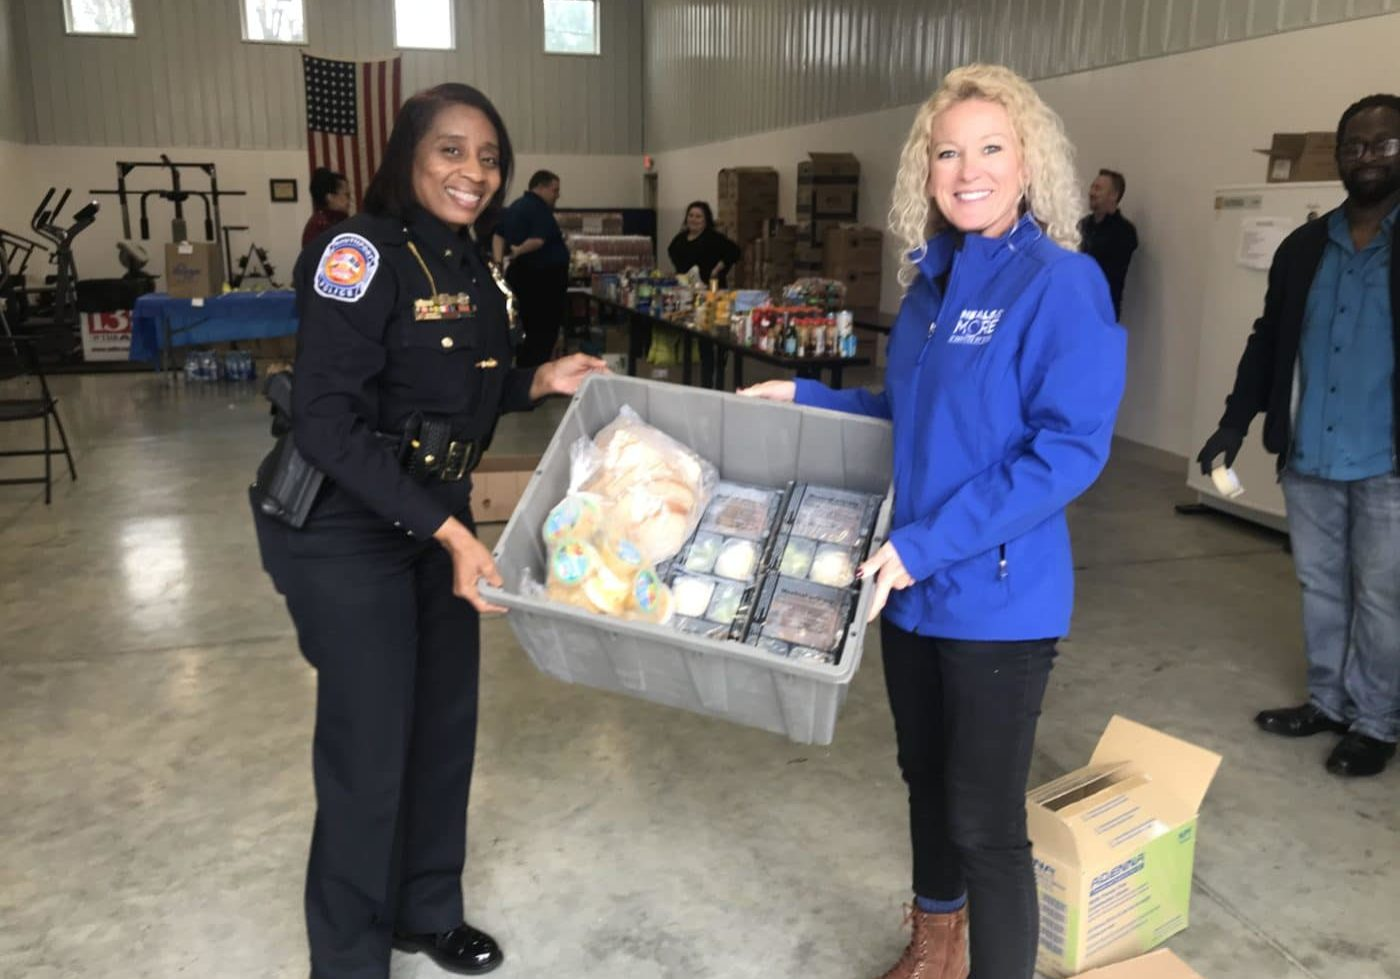 Delivering meals to seniors with Southport Police Department